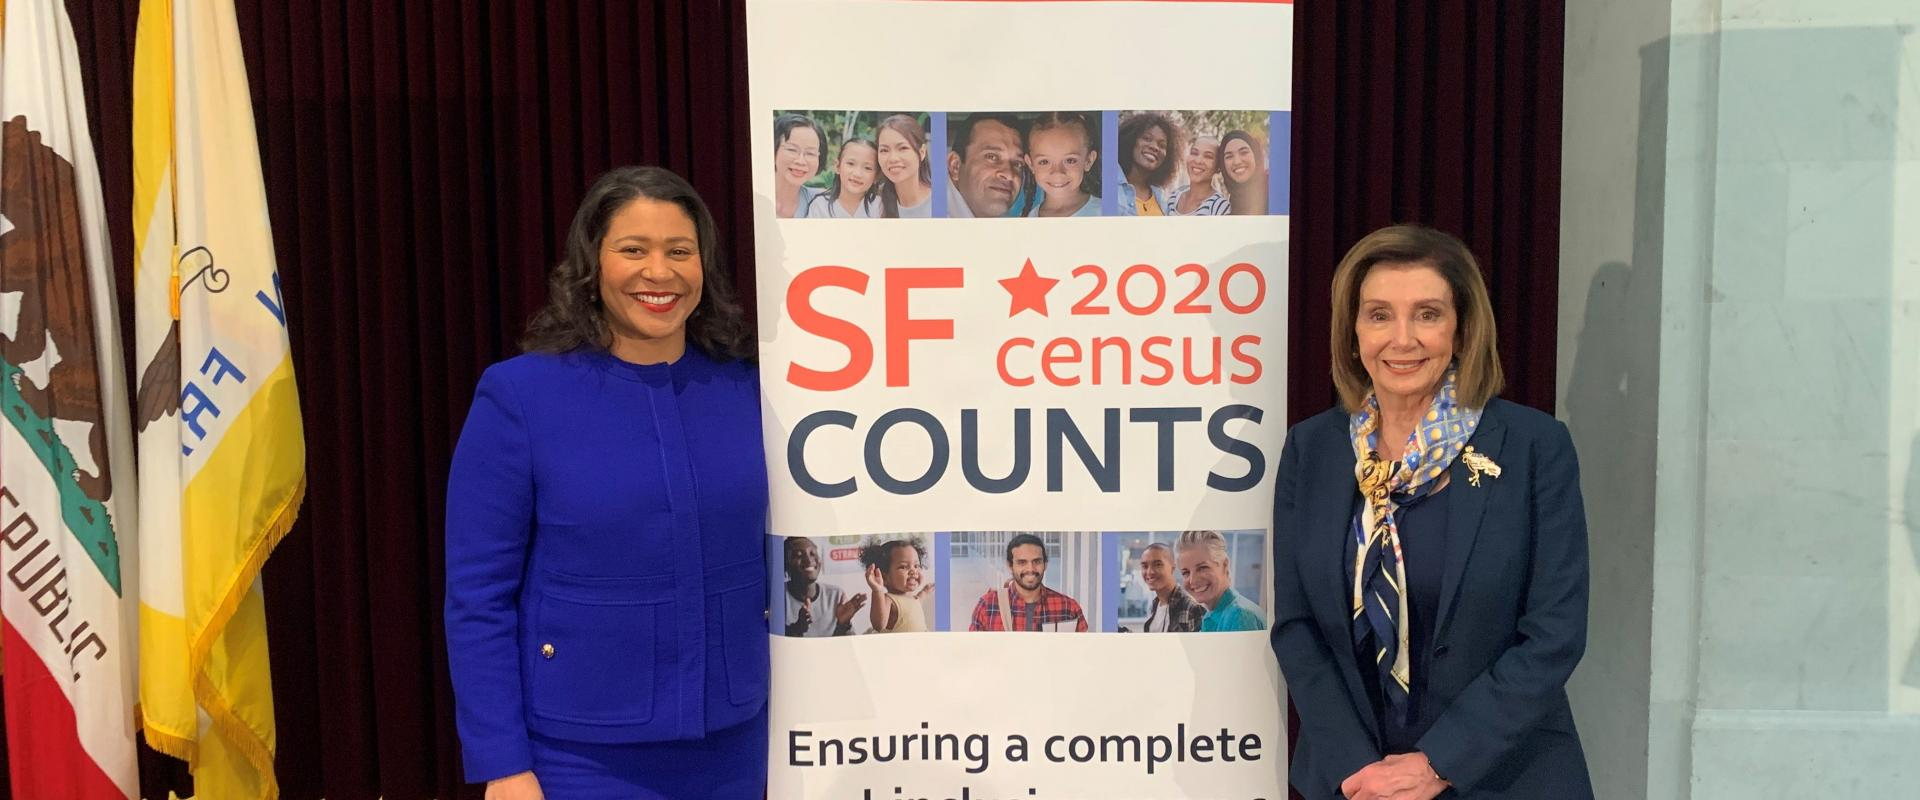 Congresswoman Nancy Pelosi joined Mayor London Breed and San Francisco city officials to kickoff outreach efforts by local community organizations in advance of the upcoming census.